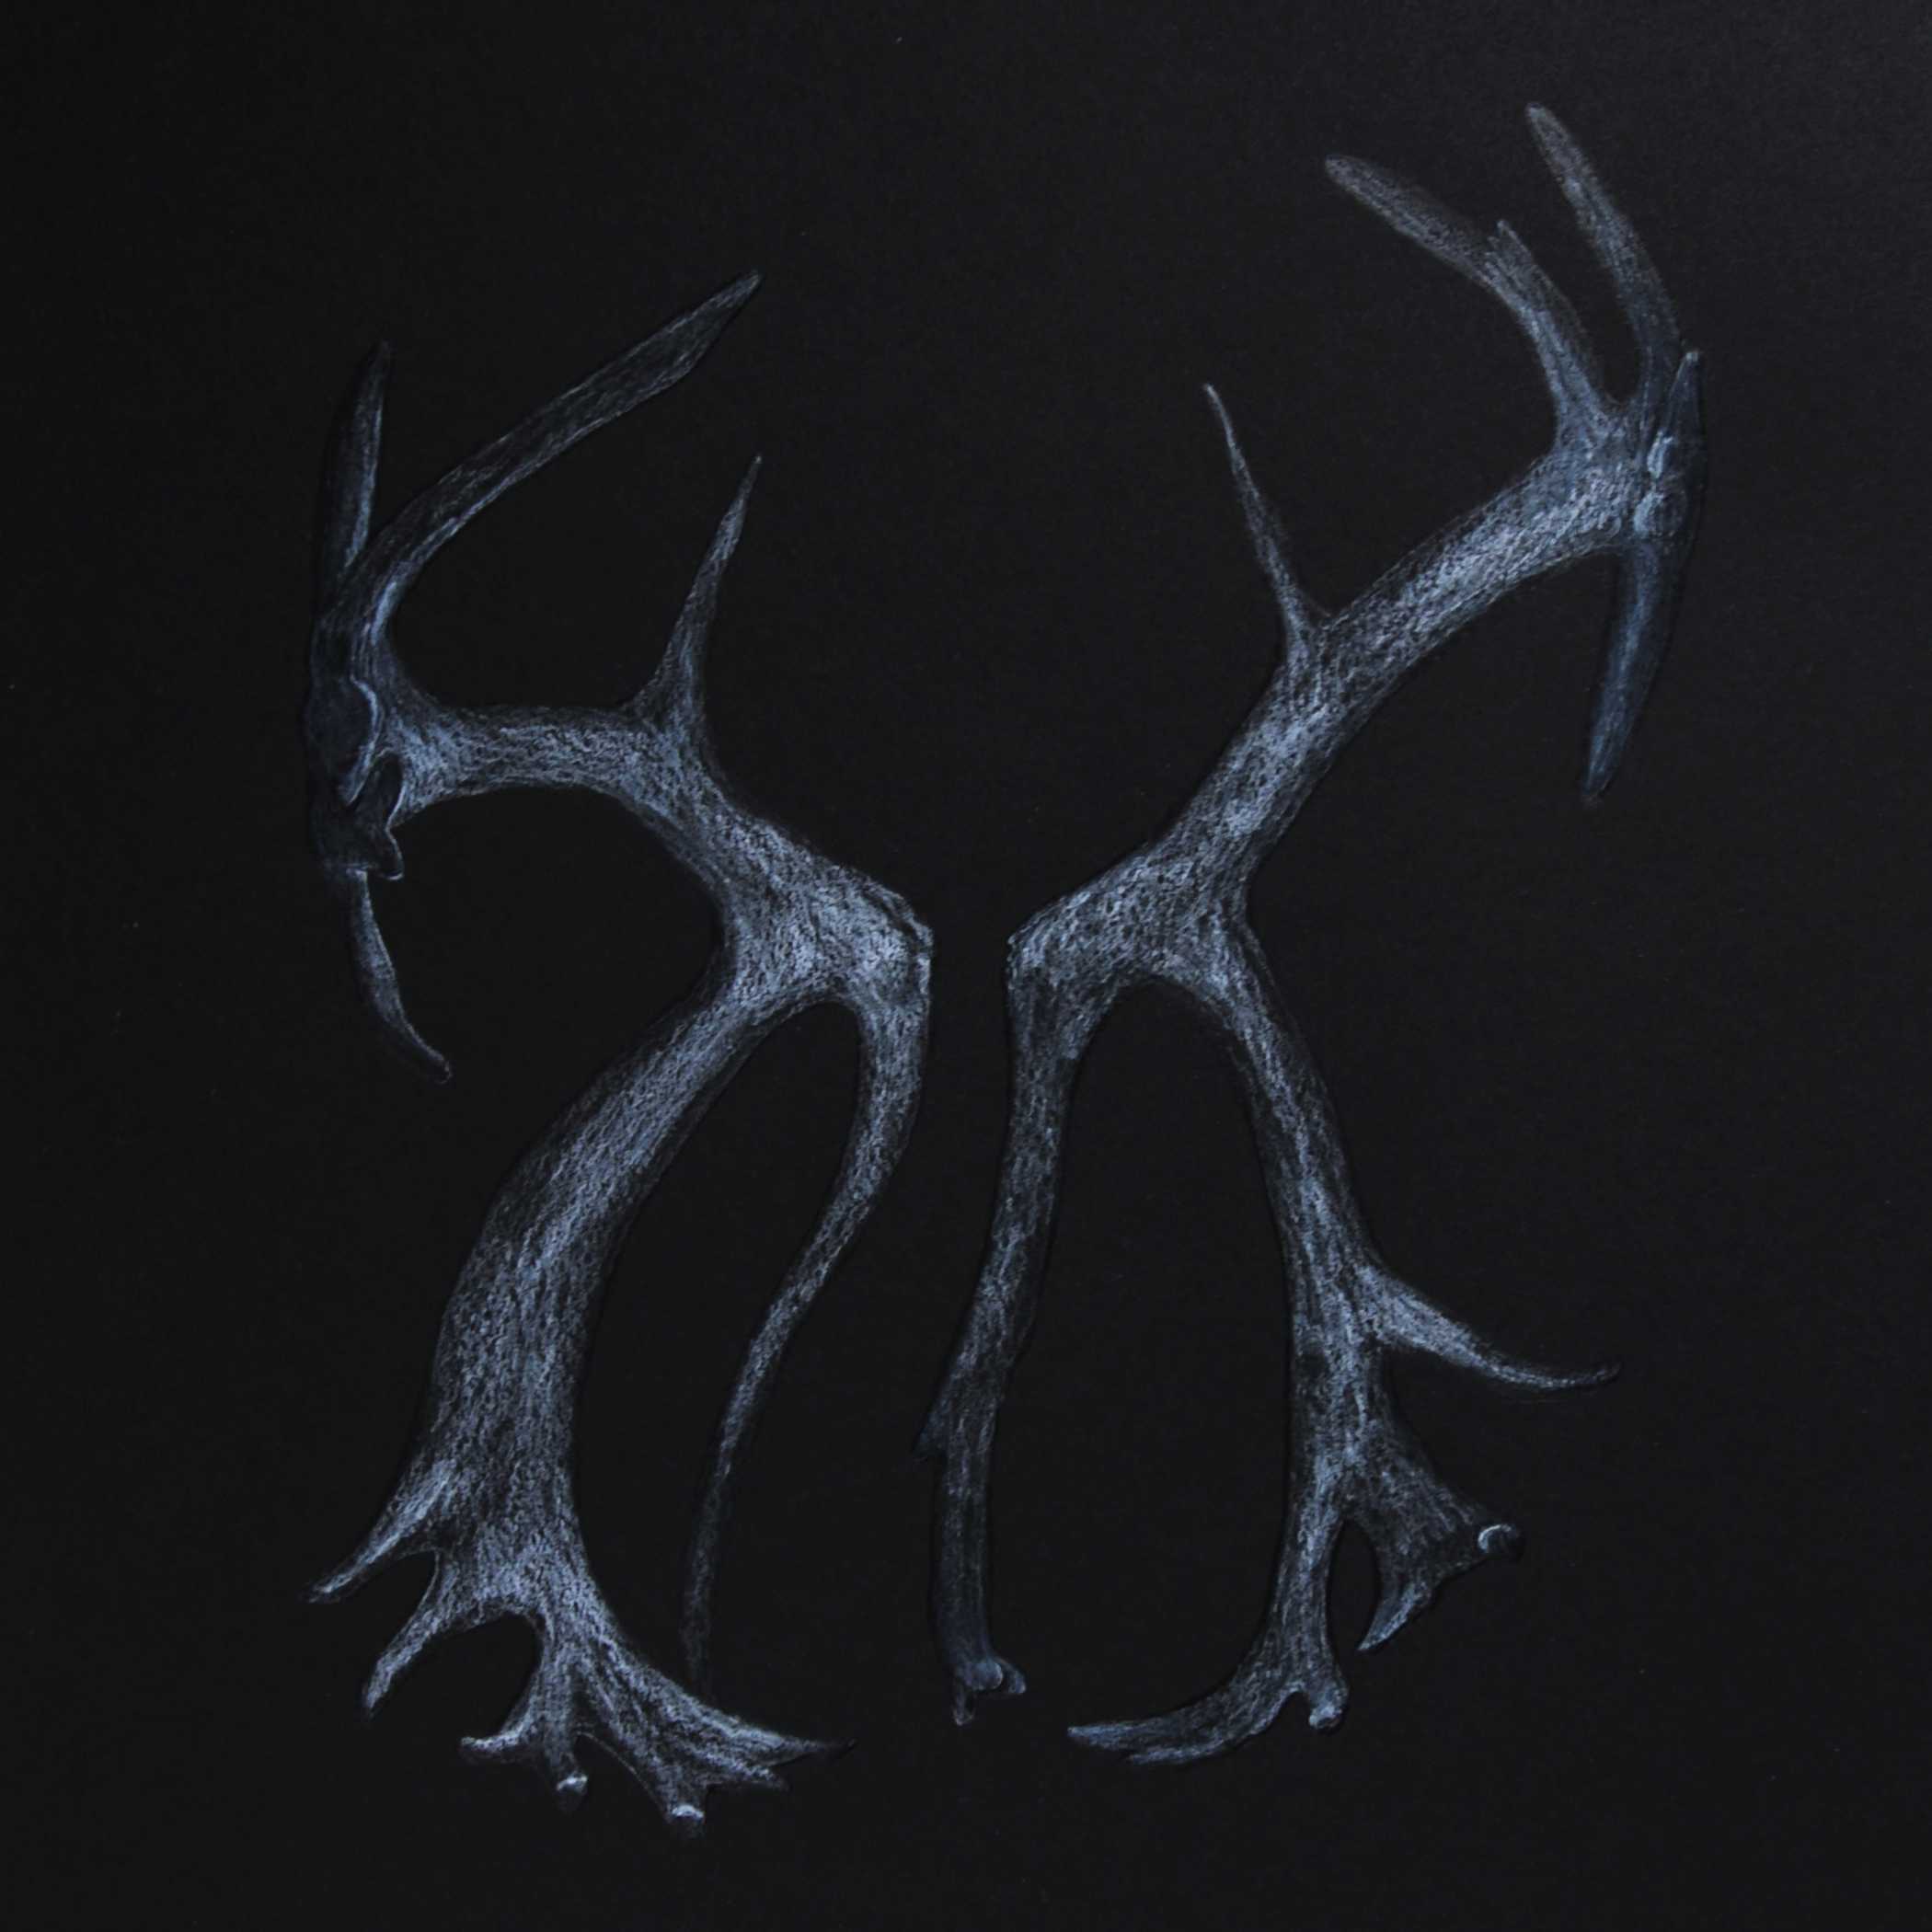 Dirty Antlers , 2018. Coloured pencil on black paper.